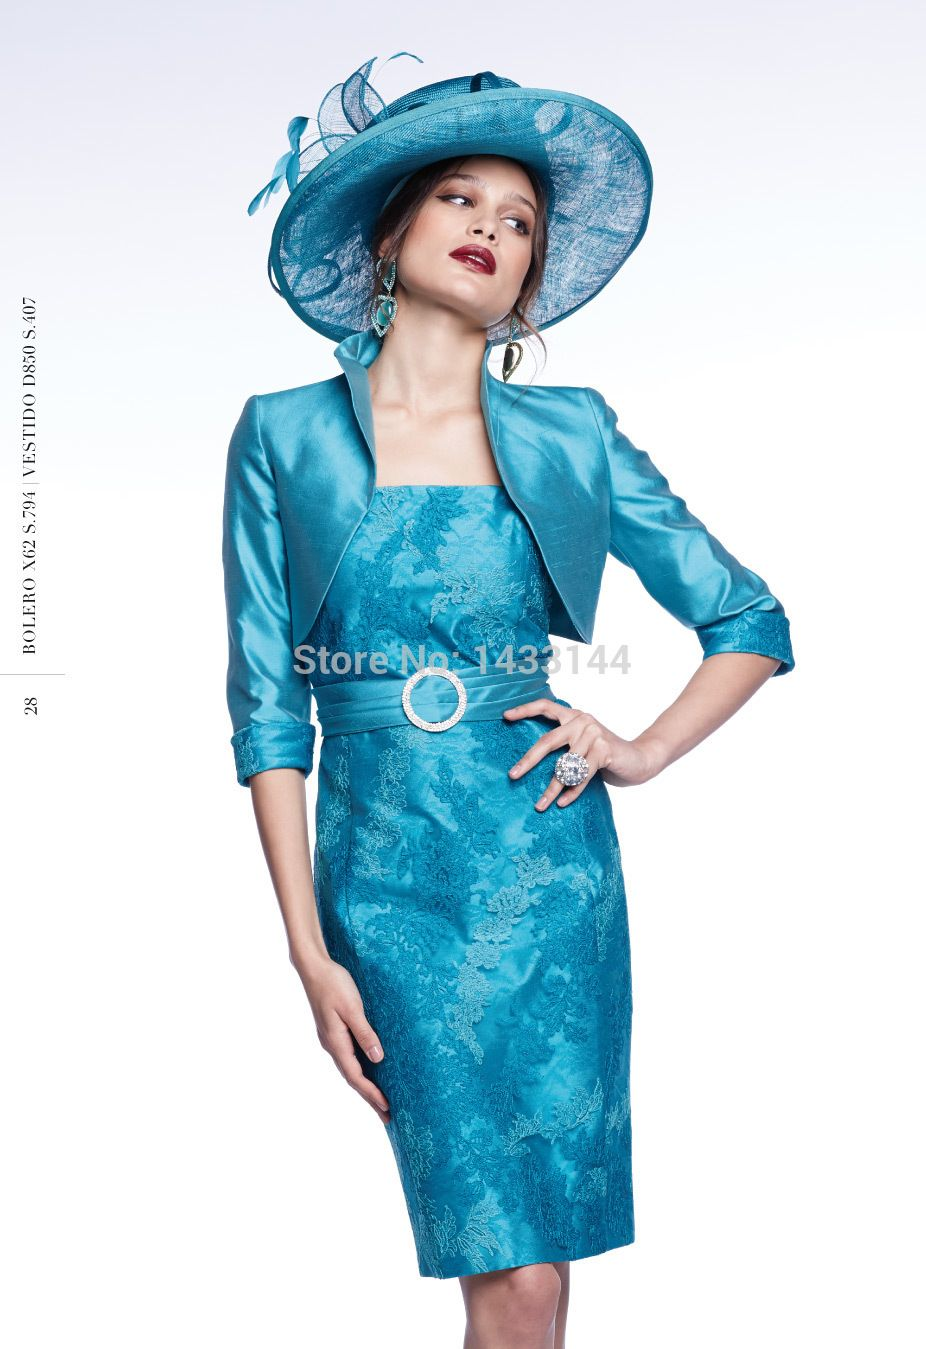 Cool Wedding Suits For Mother Of The Bride Contemporary - Wedding ...